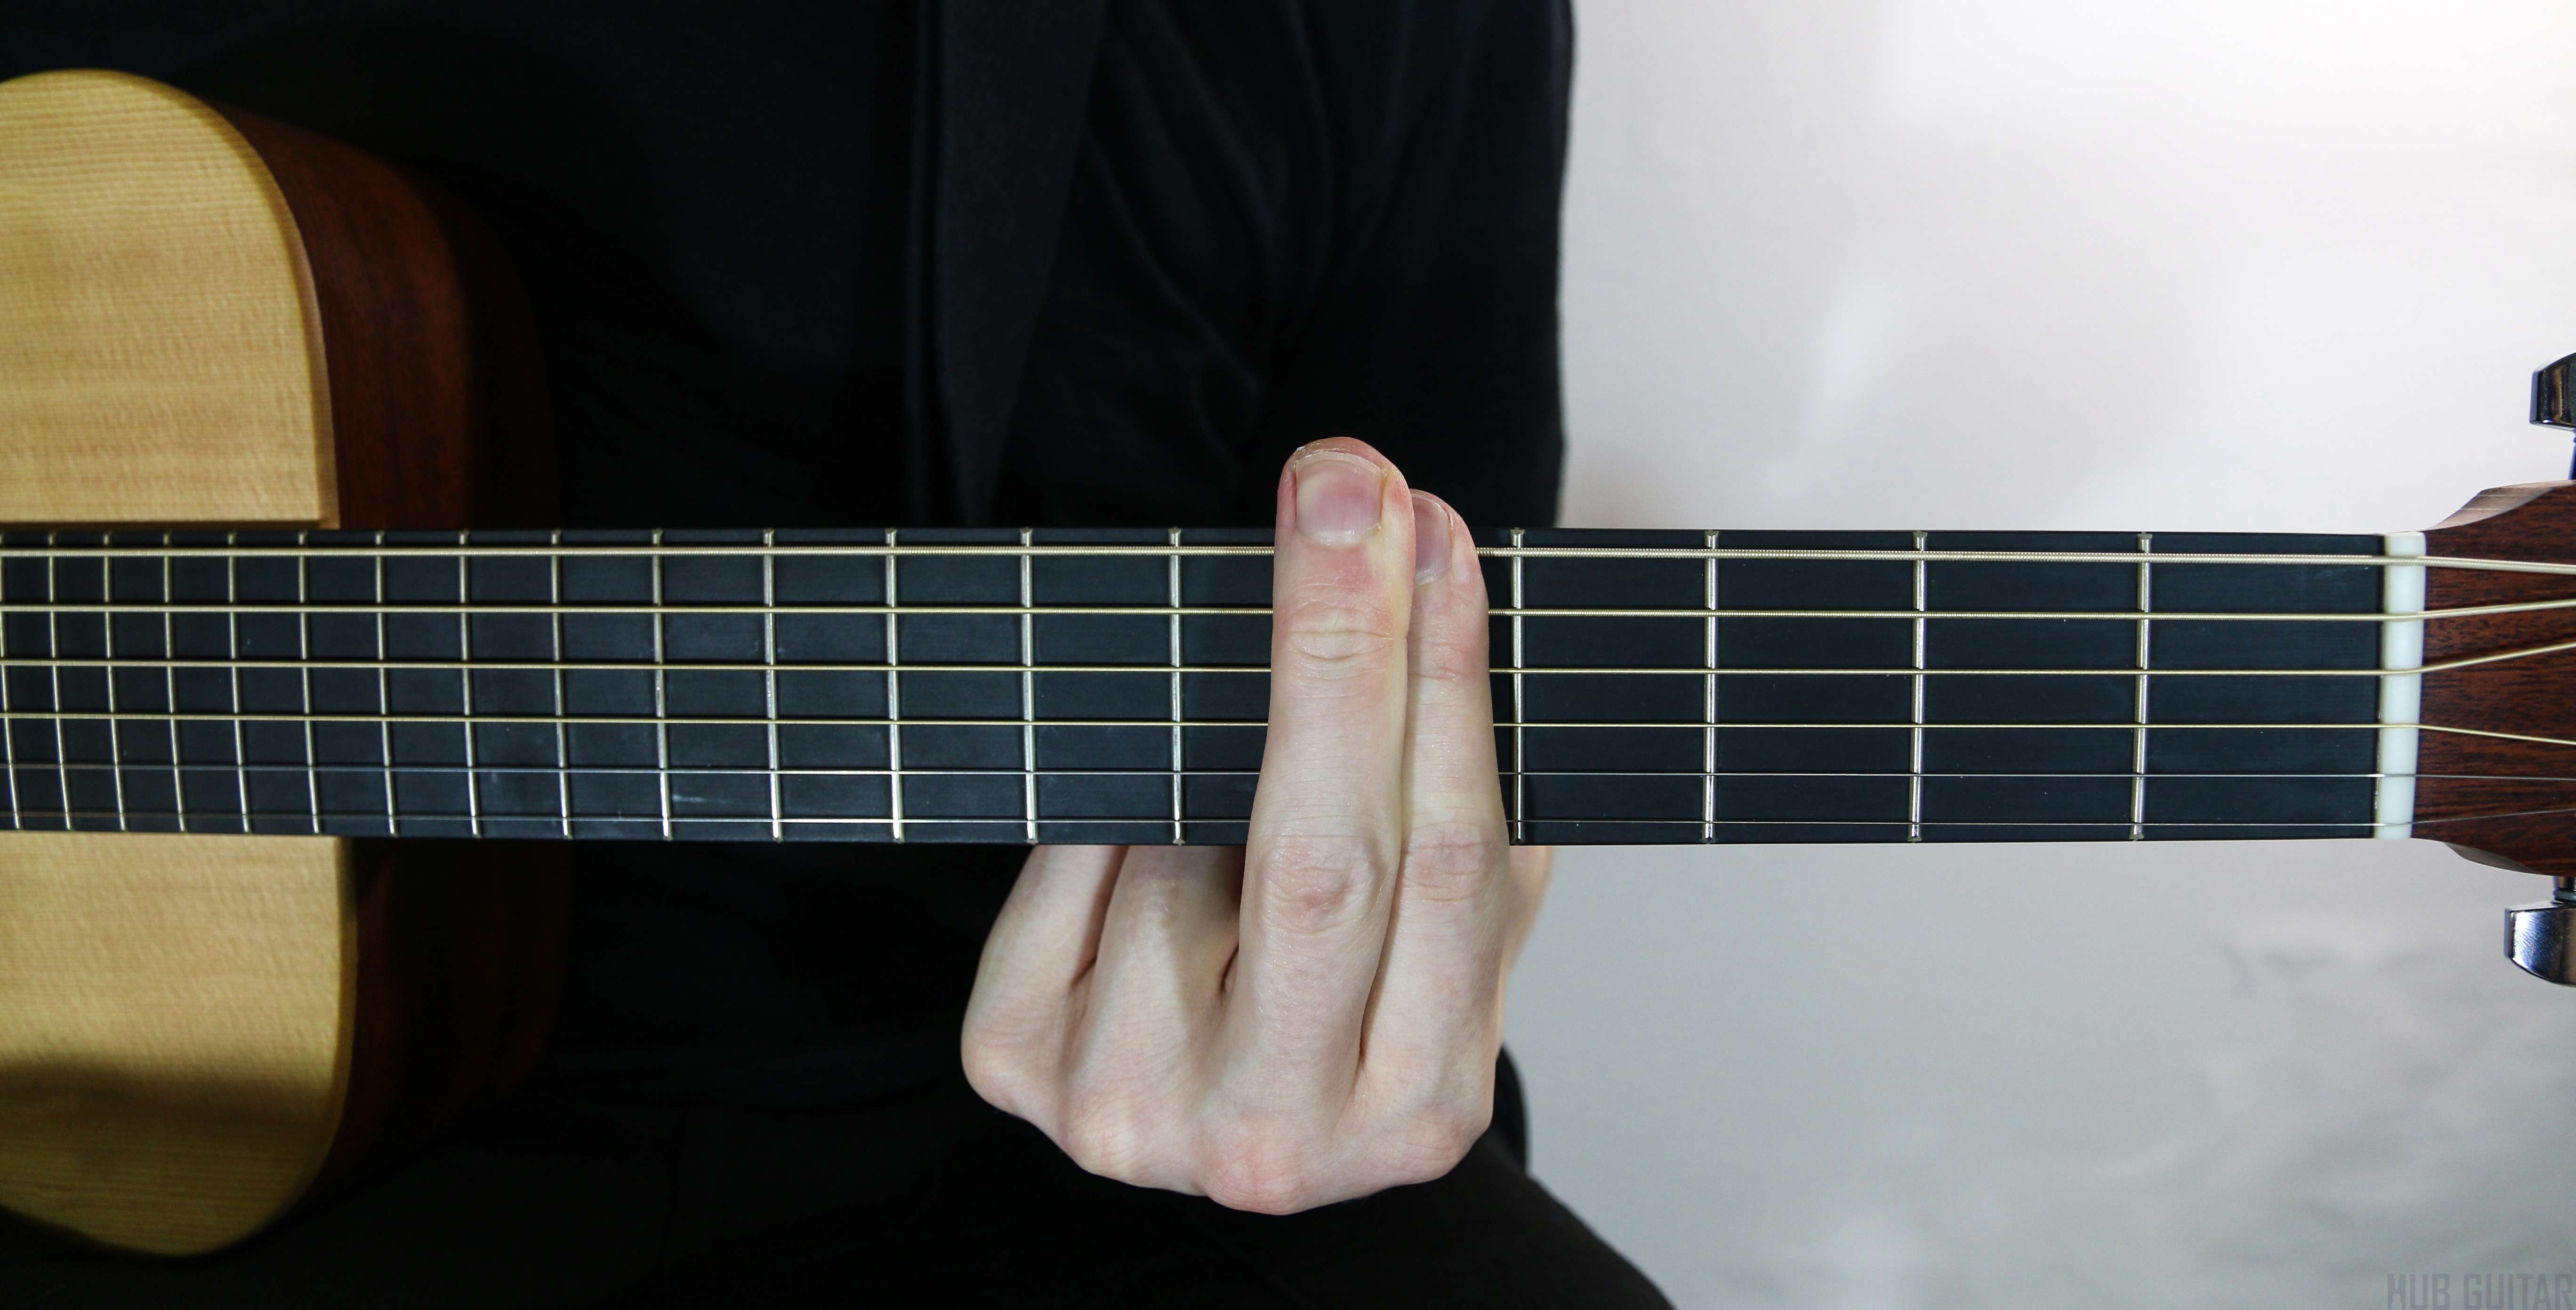 Using two fingers to barre one fret.